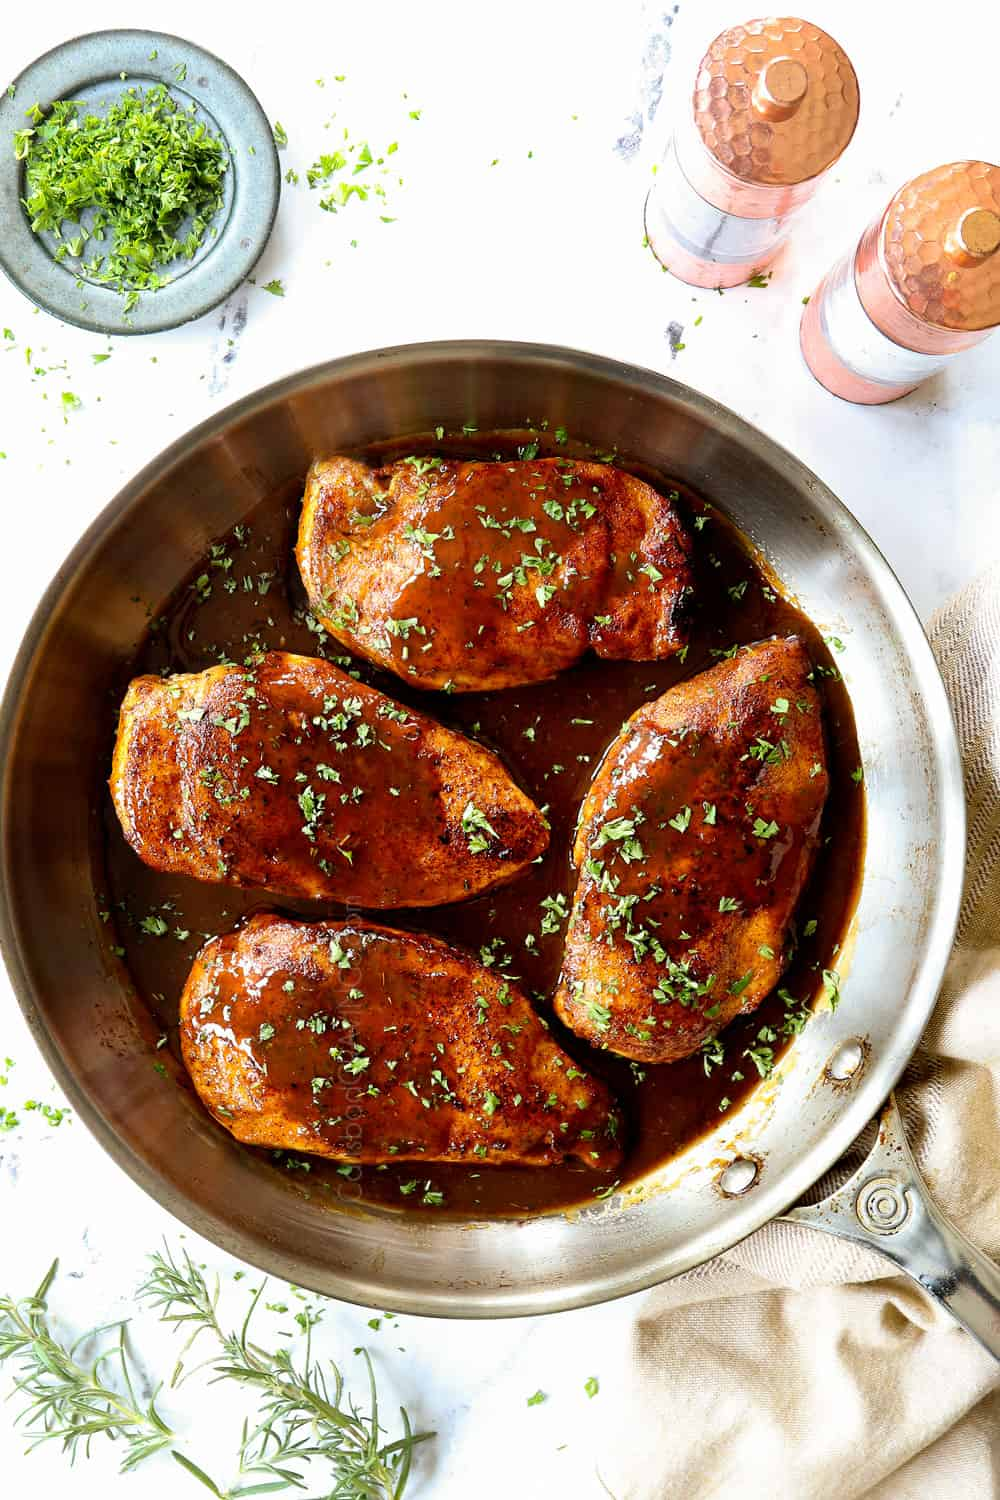 up close top view of brown sugar chicken recipe garnished with parsley